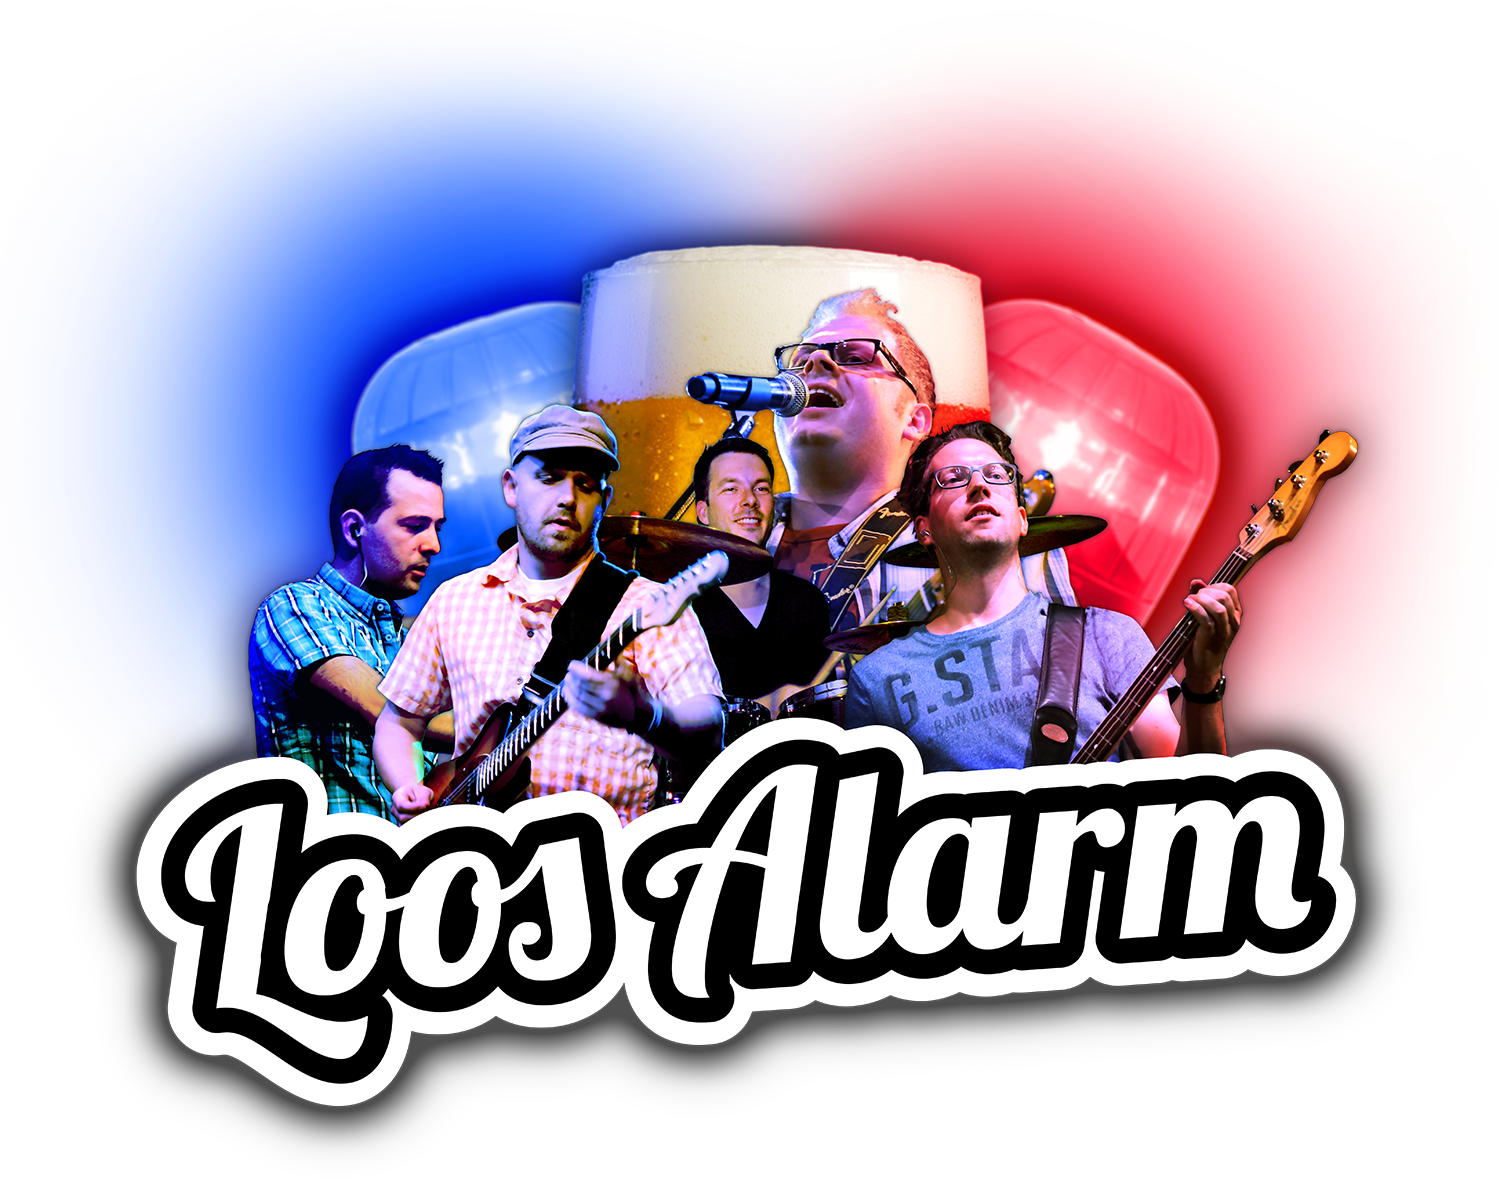 Loos ALarm Nederpop Covers